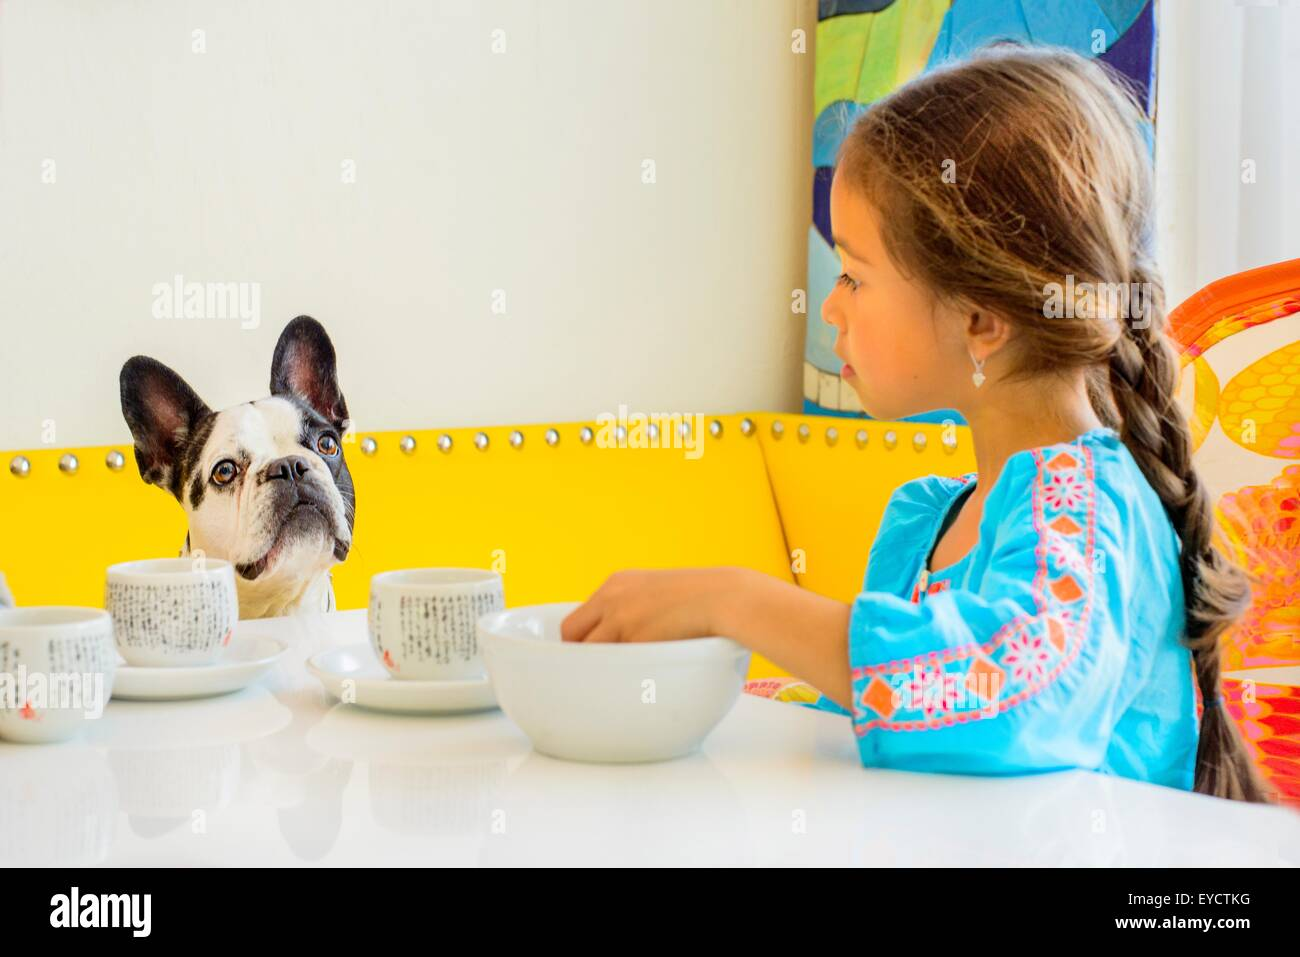 Girl and dog looking at each other at table - Stock Image